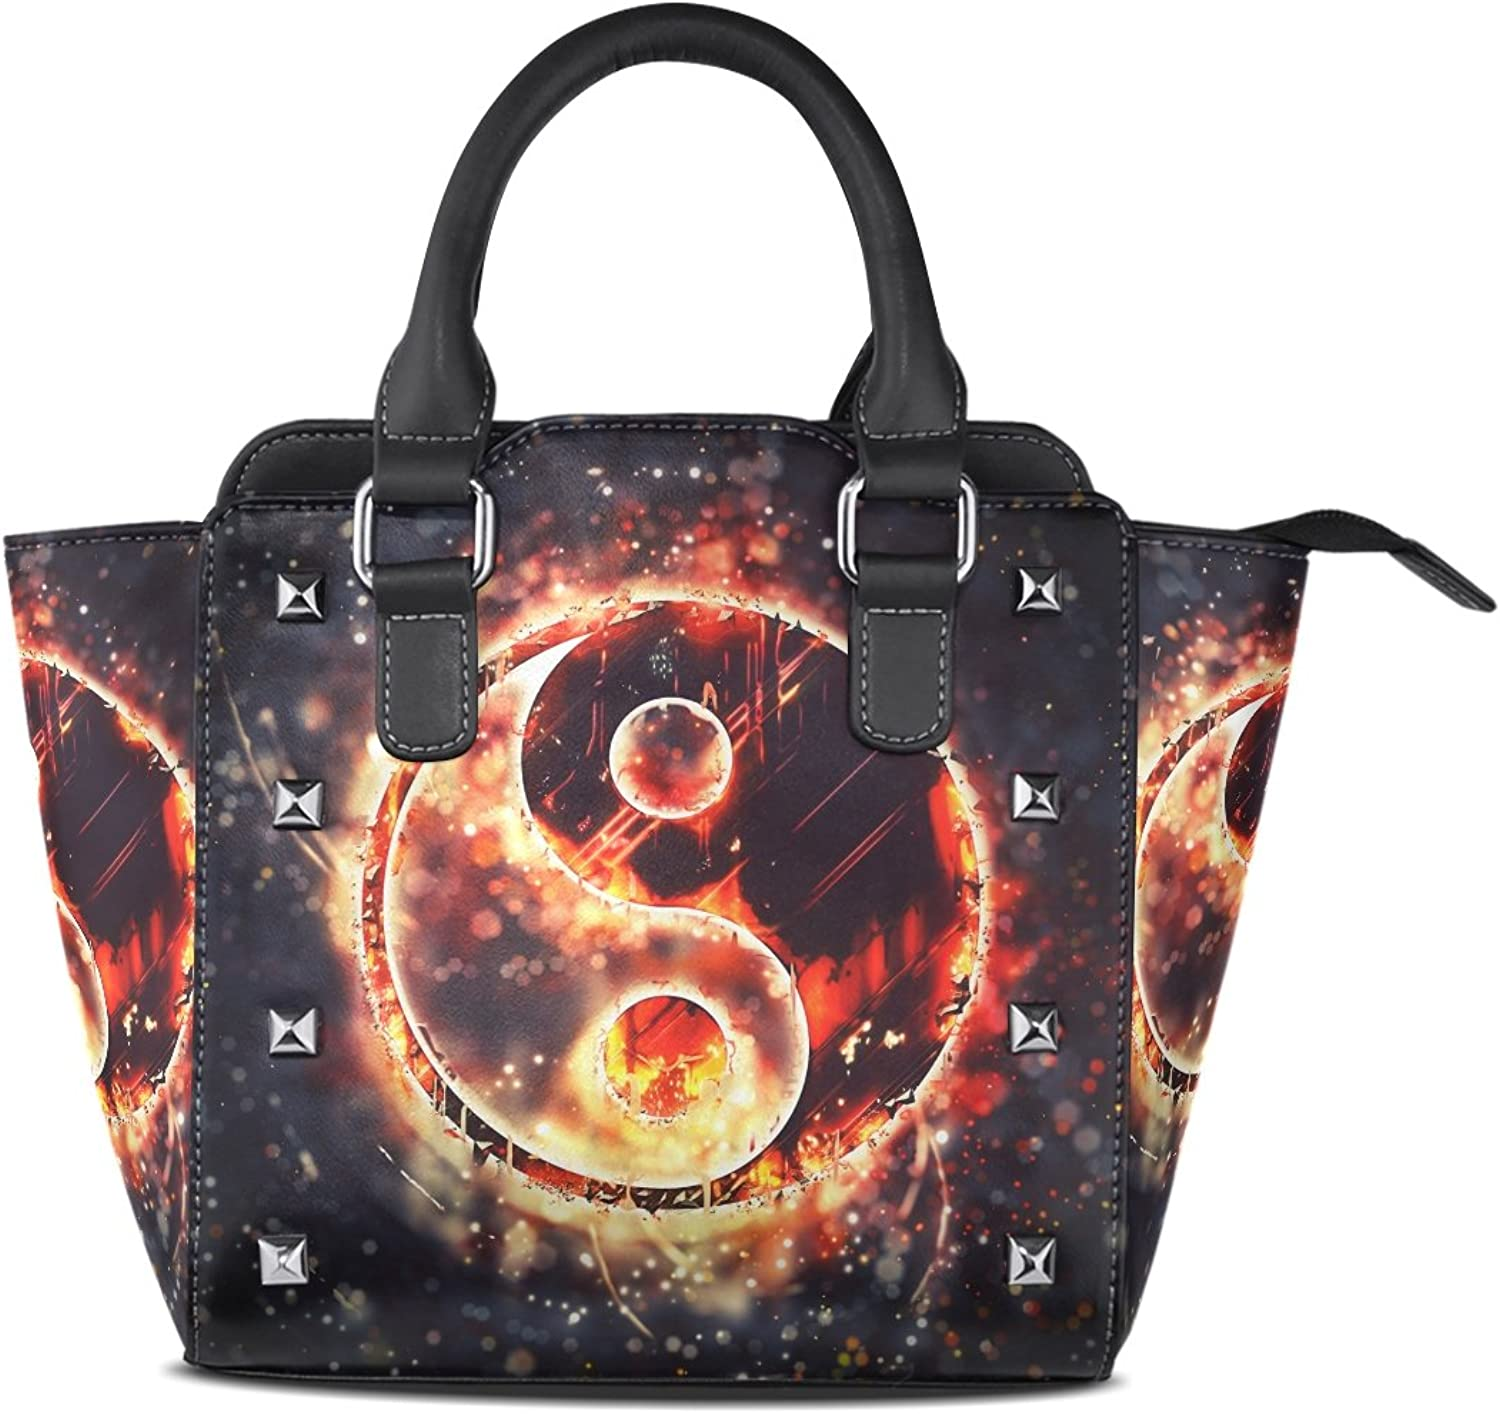 Sunlome Burning Yin Yang Sign Print Handbags Women's PU Leather Top-Handle Shoulder Bags